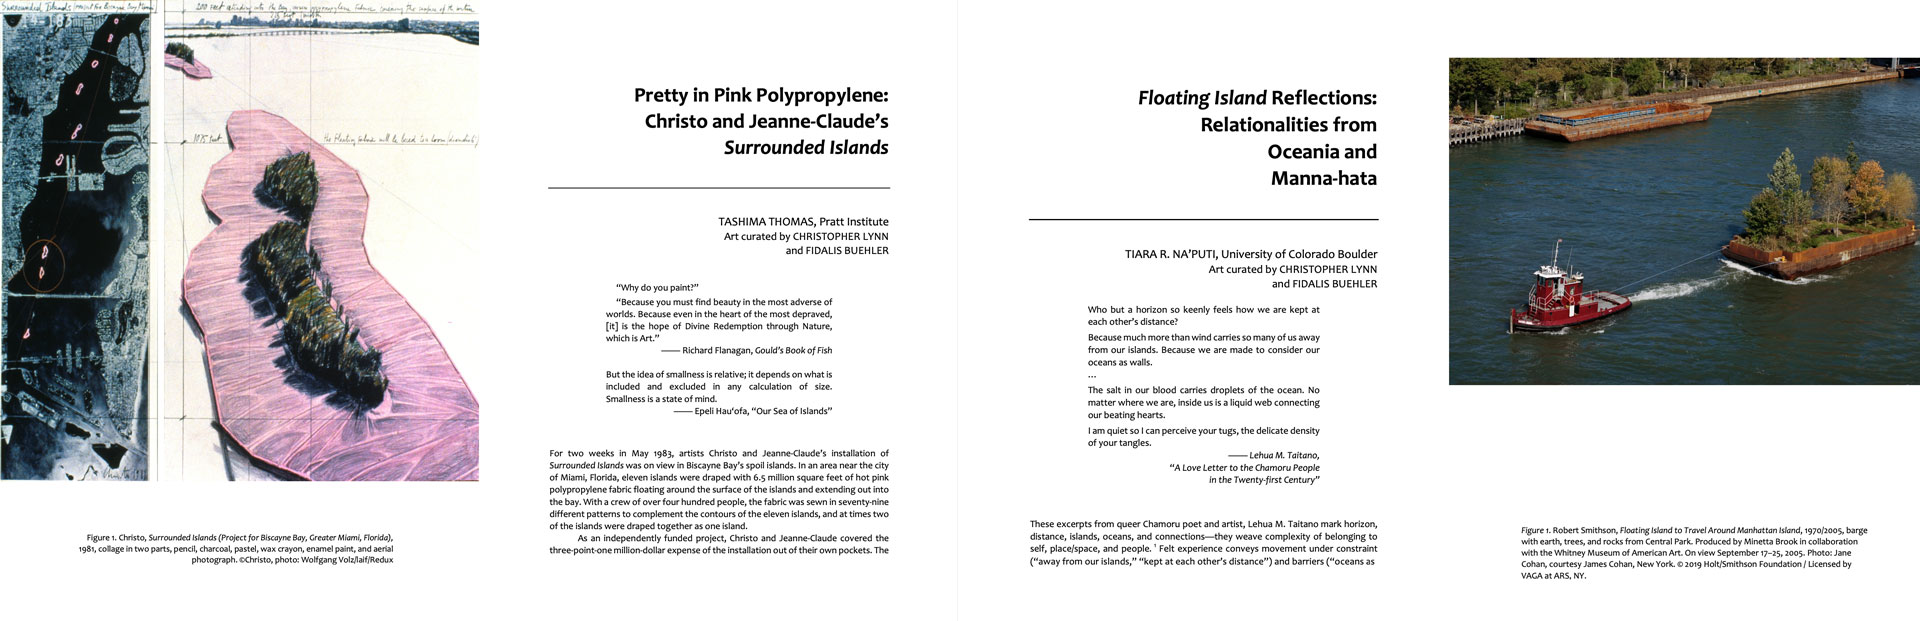 Journal of Transnational American Studies, spreads of essays on the work of Christo & Jeanne-Claude and Robert Smithson